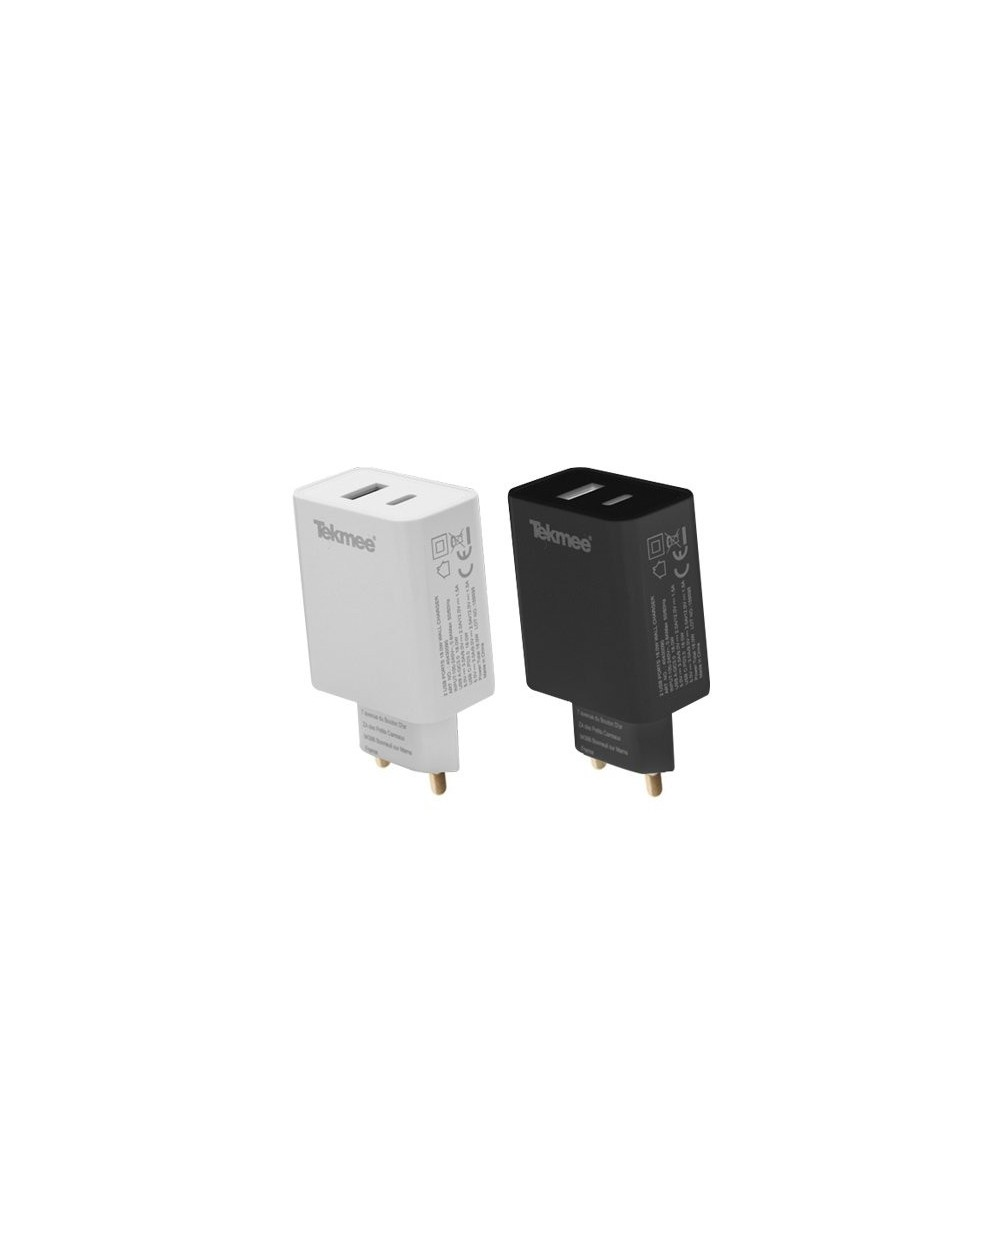 Wall Fast Charger USB 3.0 and Type-C - Tekmee-1